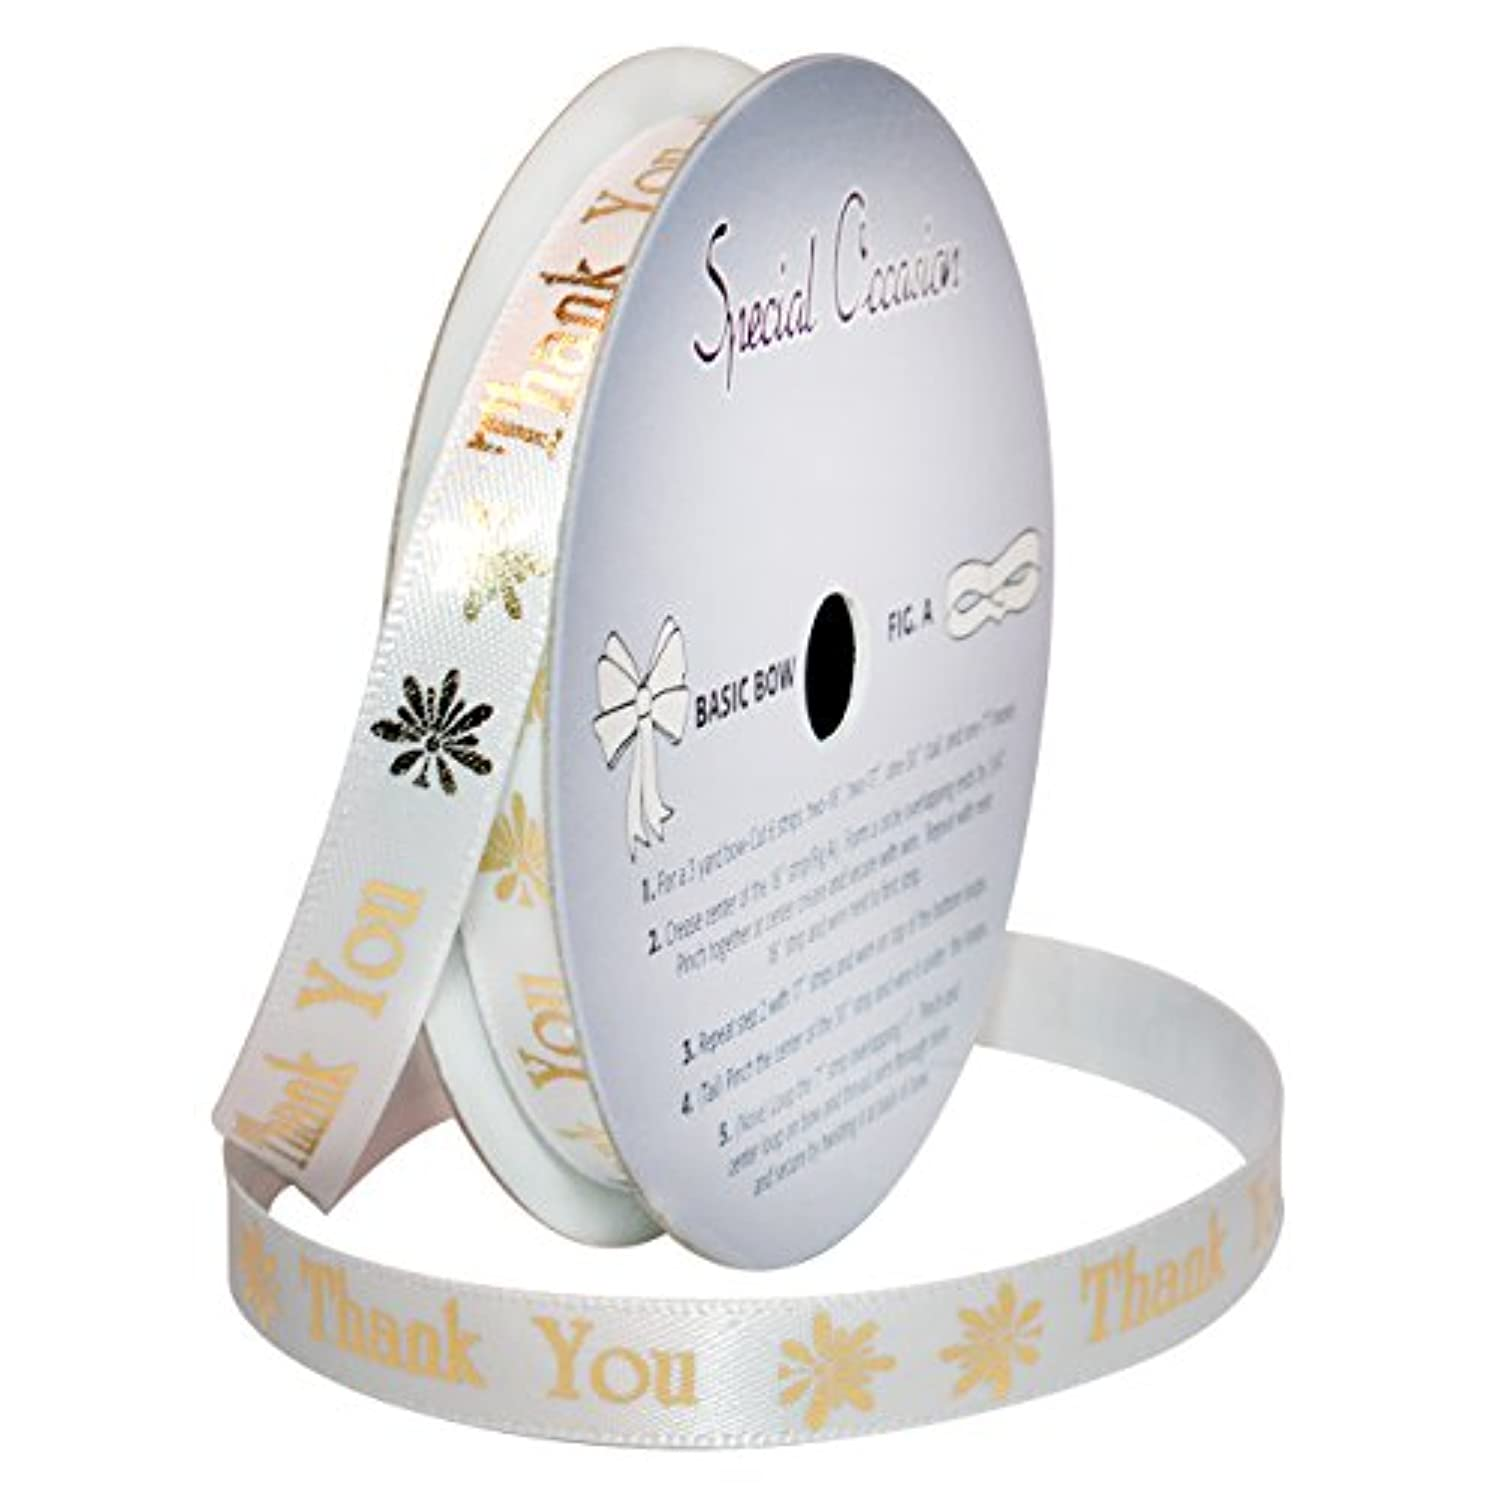 Morex Ribbon Special Occasions Ribbon: Thank You, Polyester, 3/8-Inch by 10-Yard, White/Metallic Gold Print, Item 90202/10-08